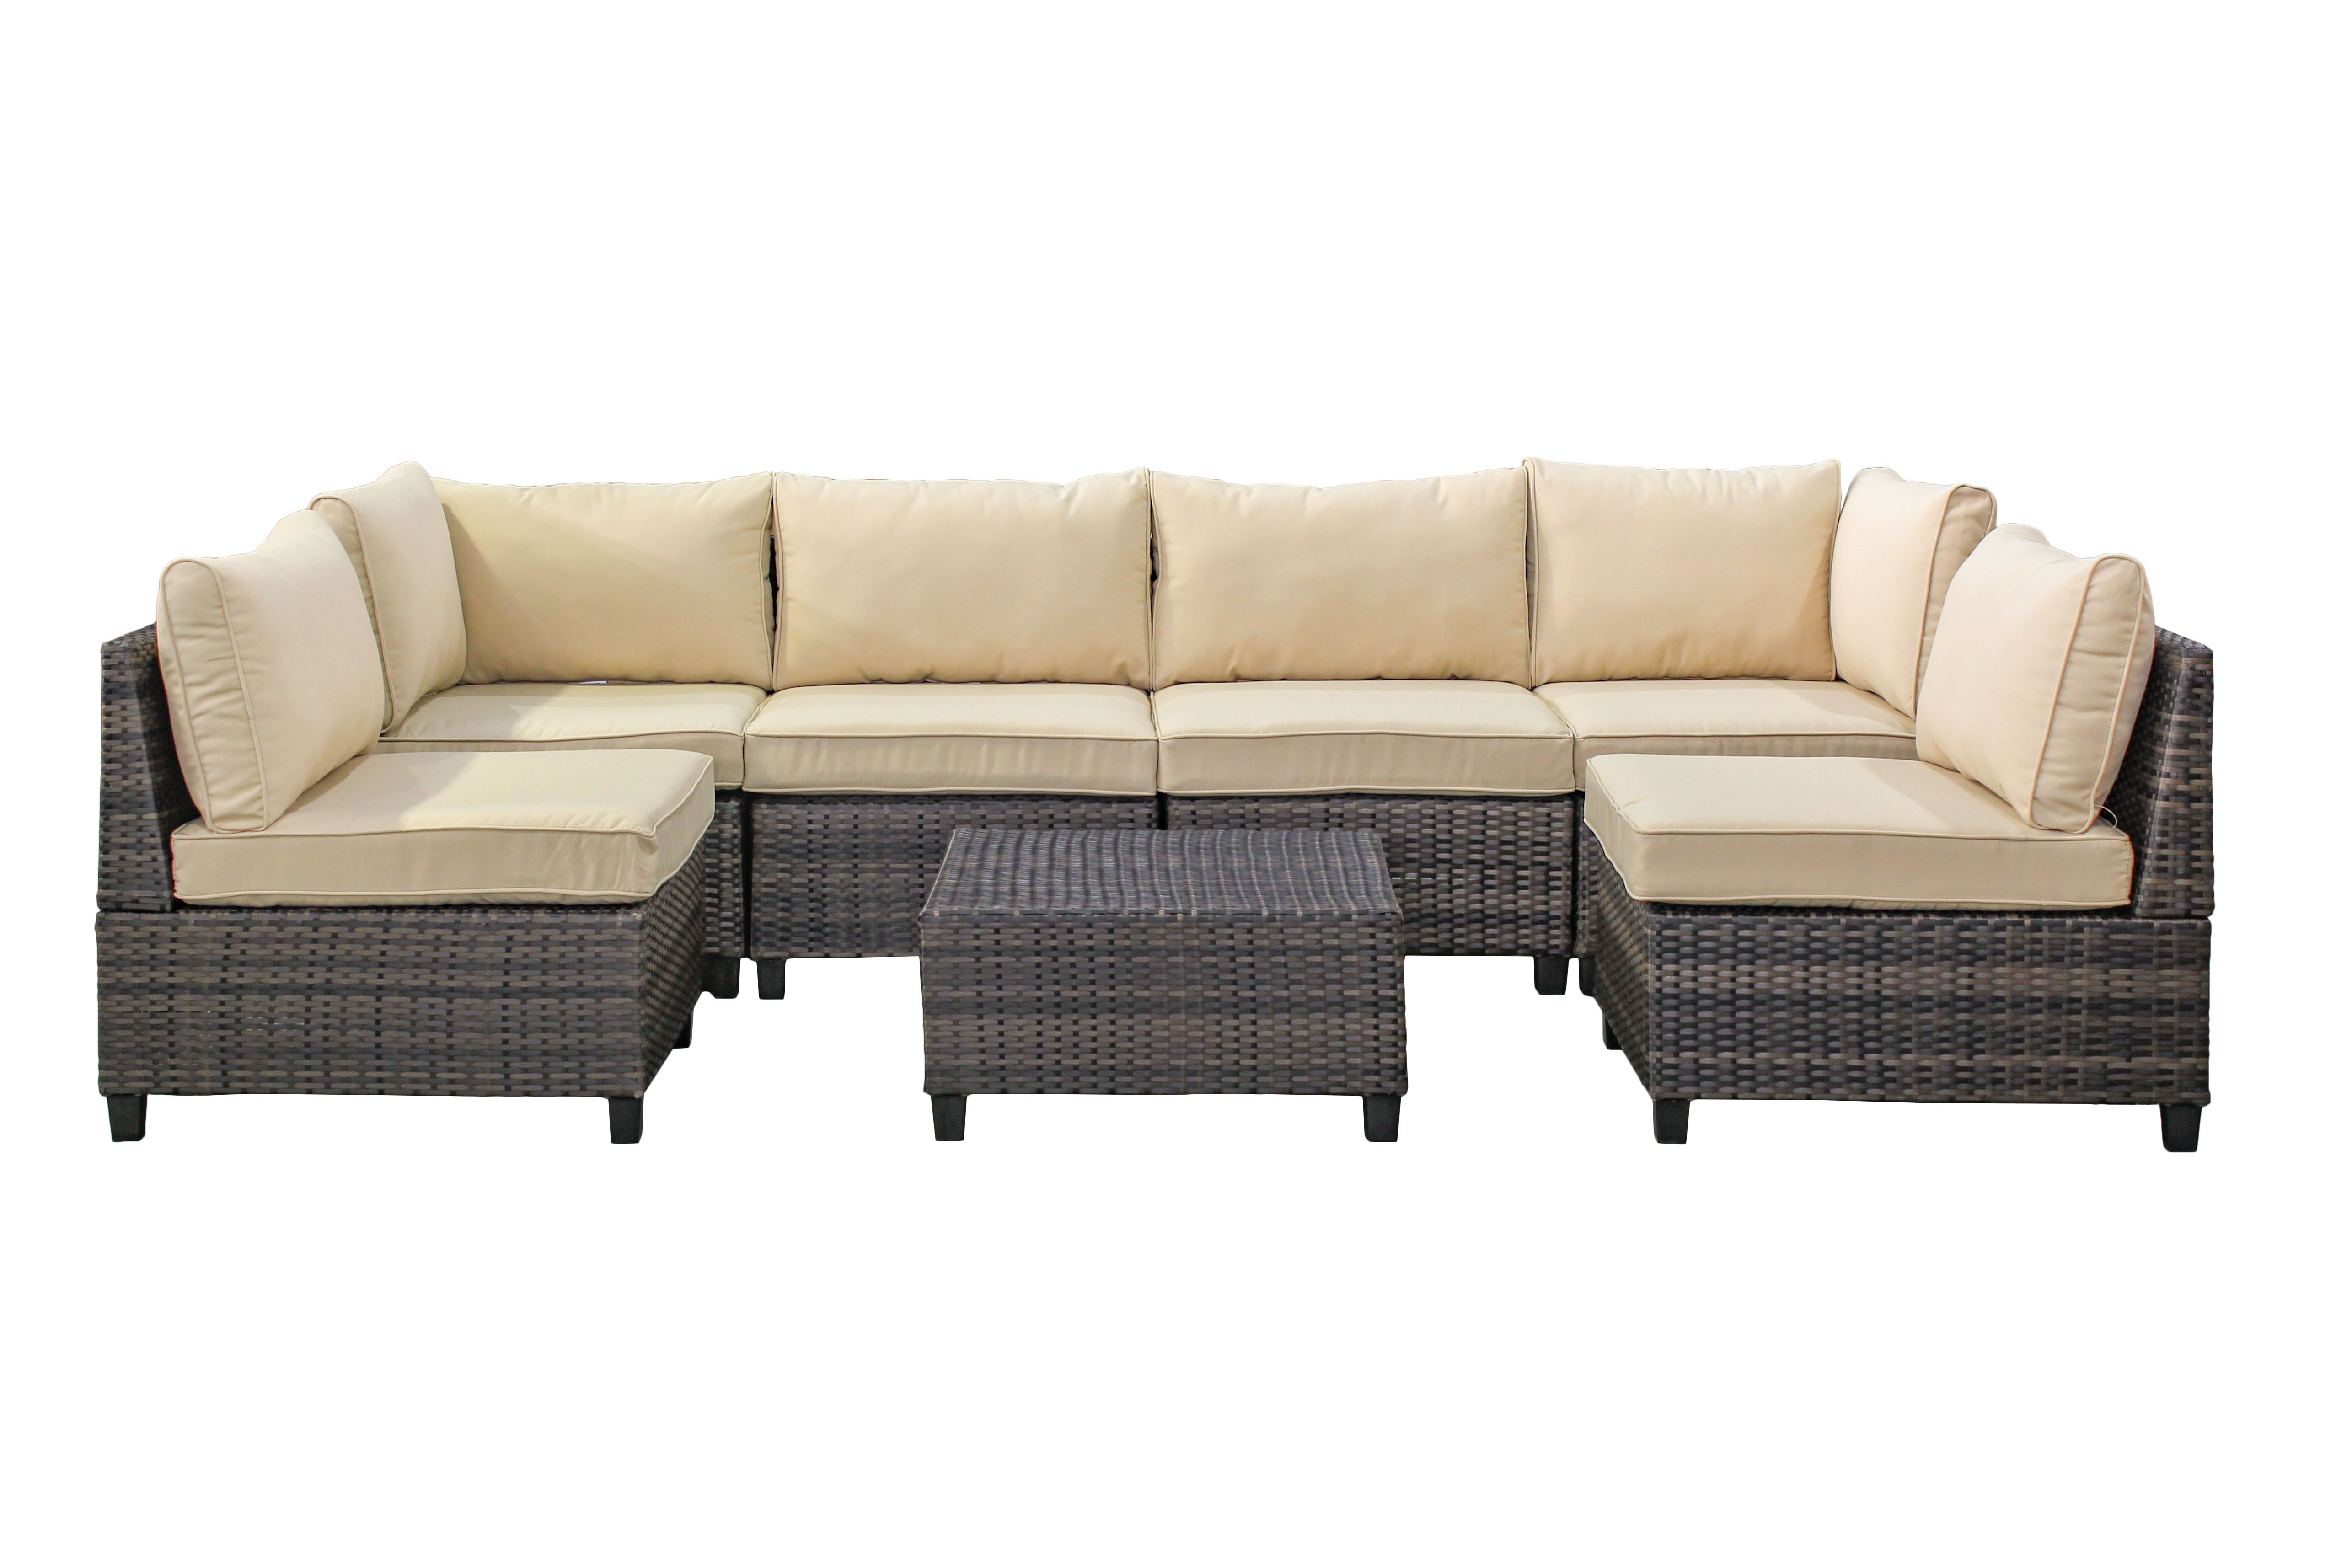 Cheap Sectional Sofas In Tampa Fl Wayfair Canada Sofa Slipcovers Pin By Living Express Patio On 2016 New Outdoor